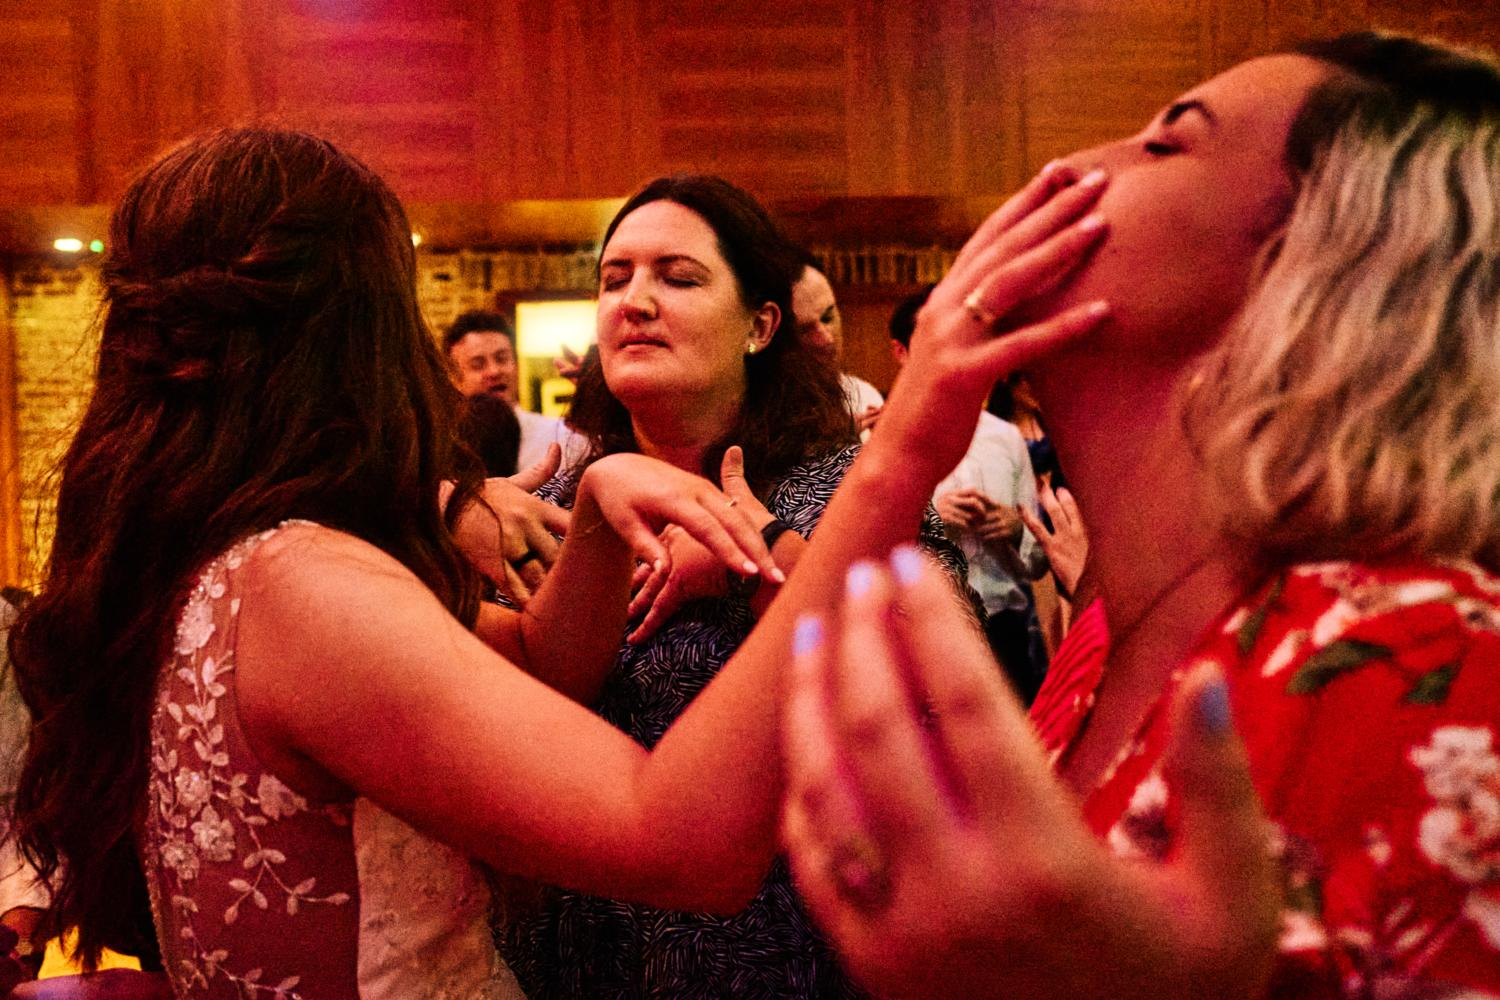 A bride touches her friend's face on a dance floor